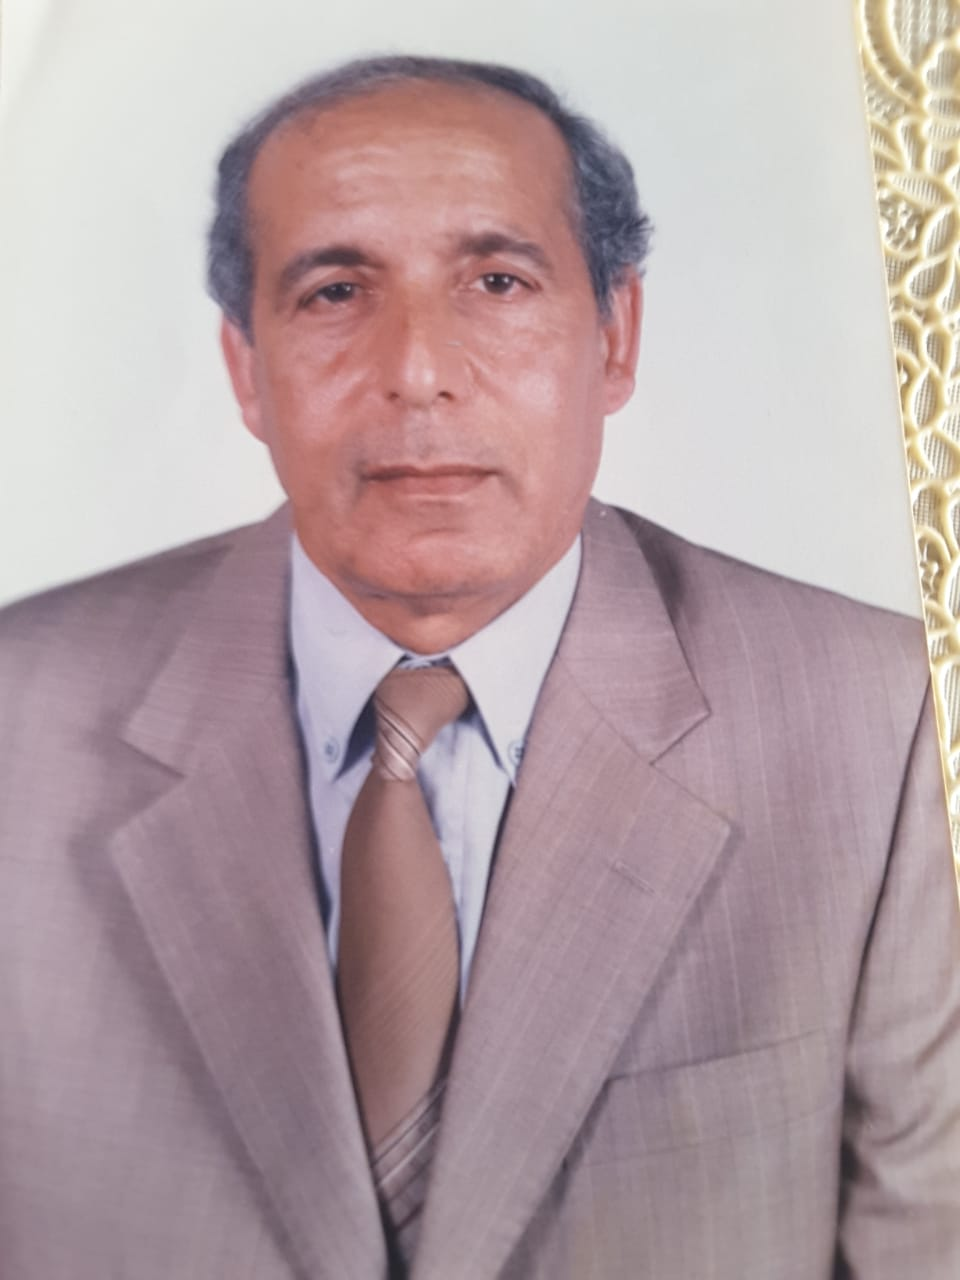 Mohammed Abou Abdallah